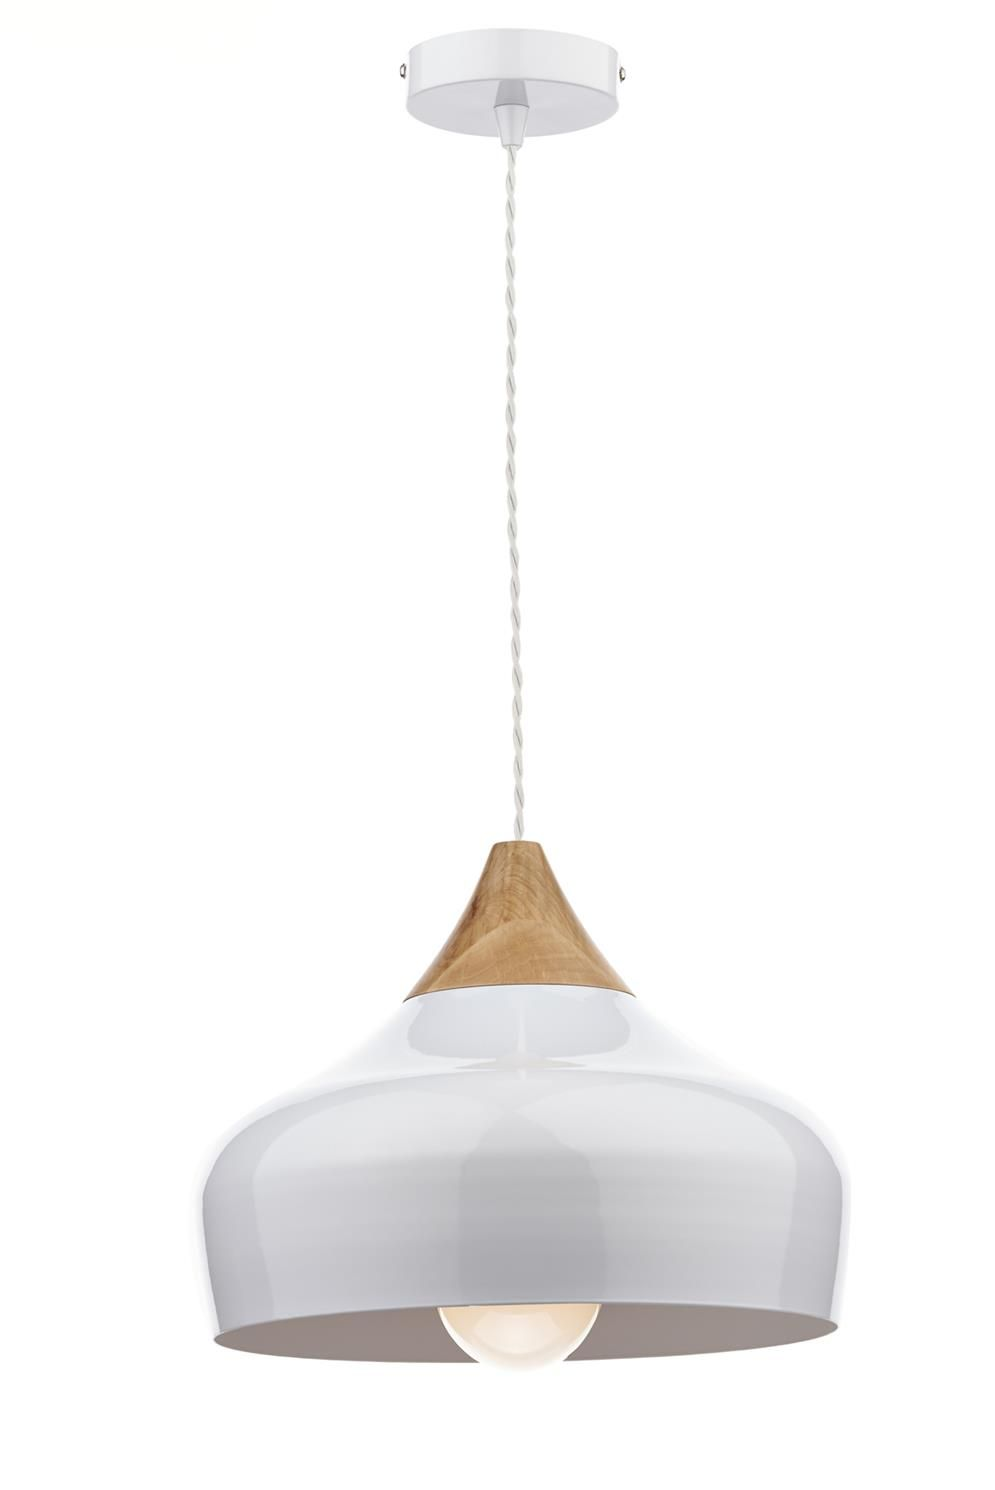 Gau0102 gaucho small pendant in gloss white wood white high gloss gau0102 gaucho small pendant in gloss white wood white high gloss metal ceiling pendantceiling lightspendant aloadofball Images